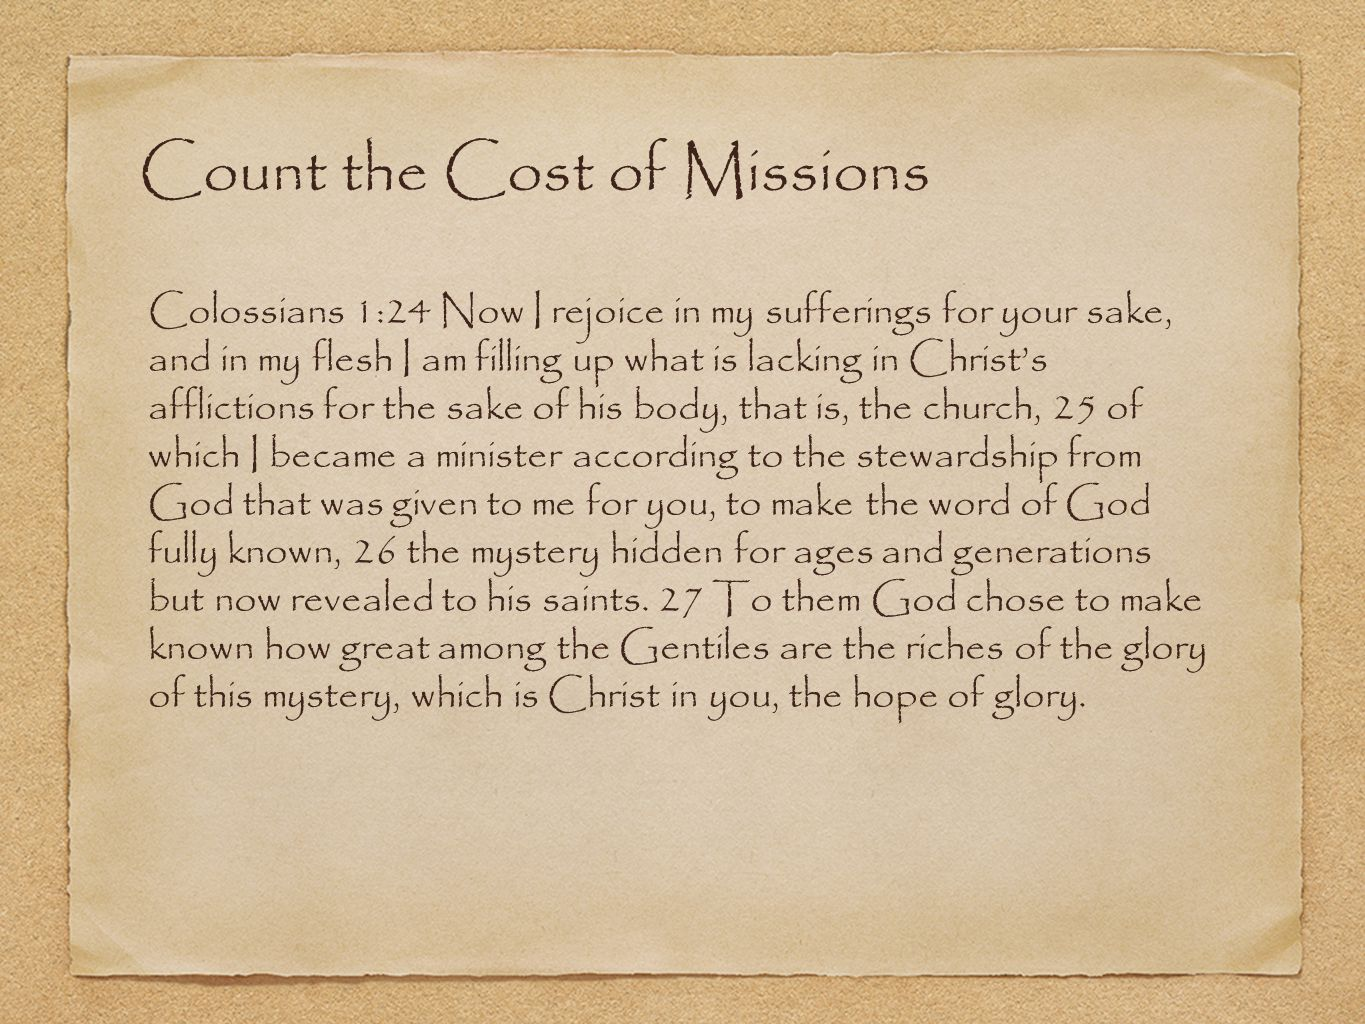 Count the Cost of Missions Colossians 1:24 Now I rejoice in my sufferings for your sake, and in my flesh I am filling up what is lacking in Christ's afflictions for the sake of his body, that is, the church, 25 of which I became a minister according to the stewardship from God that was given to me for you, to make the word of God fully known, 26 the mystery hidden for ages and generations but now revealed to his saints.